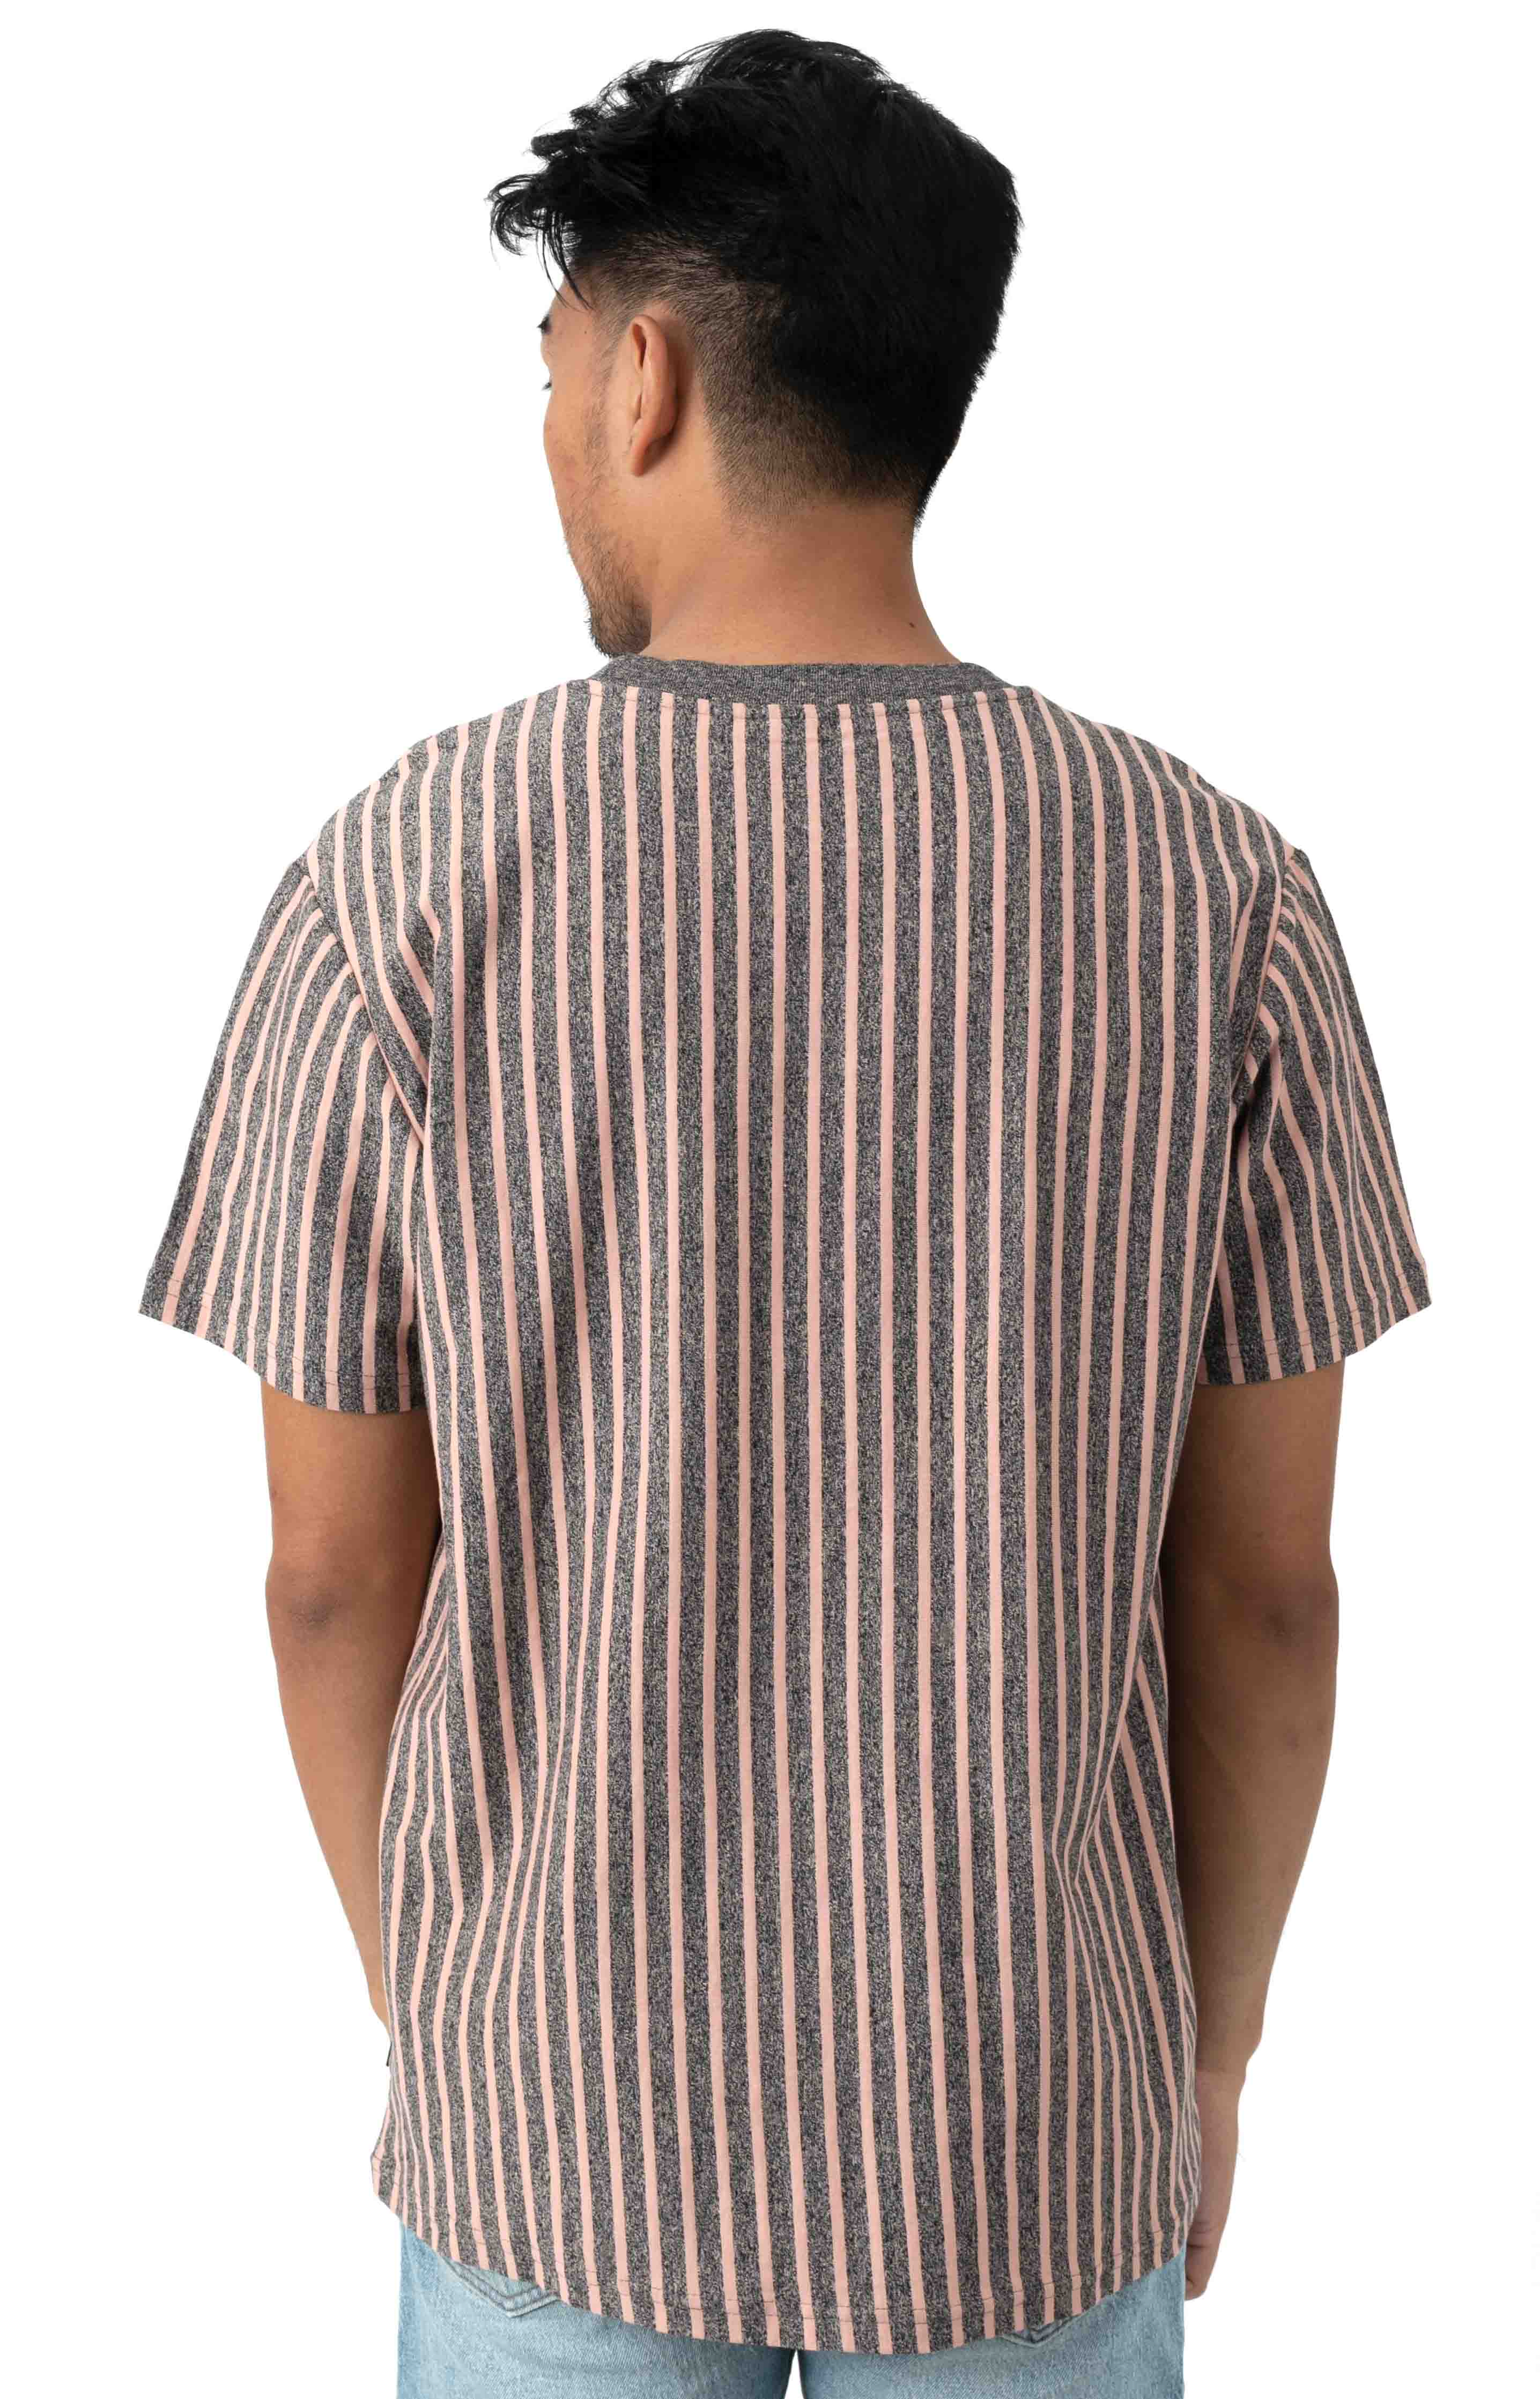 Overdyed Vertical Stripe Shirt - Coral Pink 3